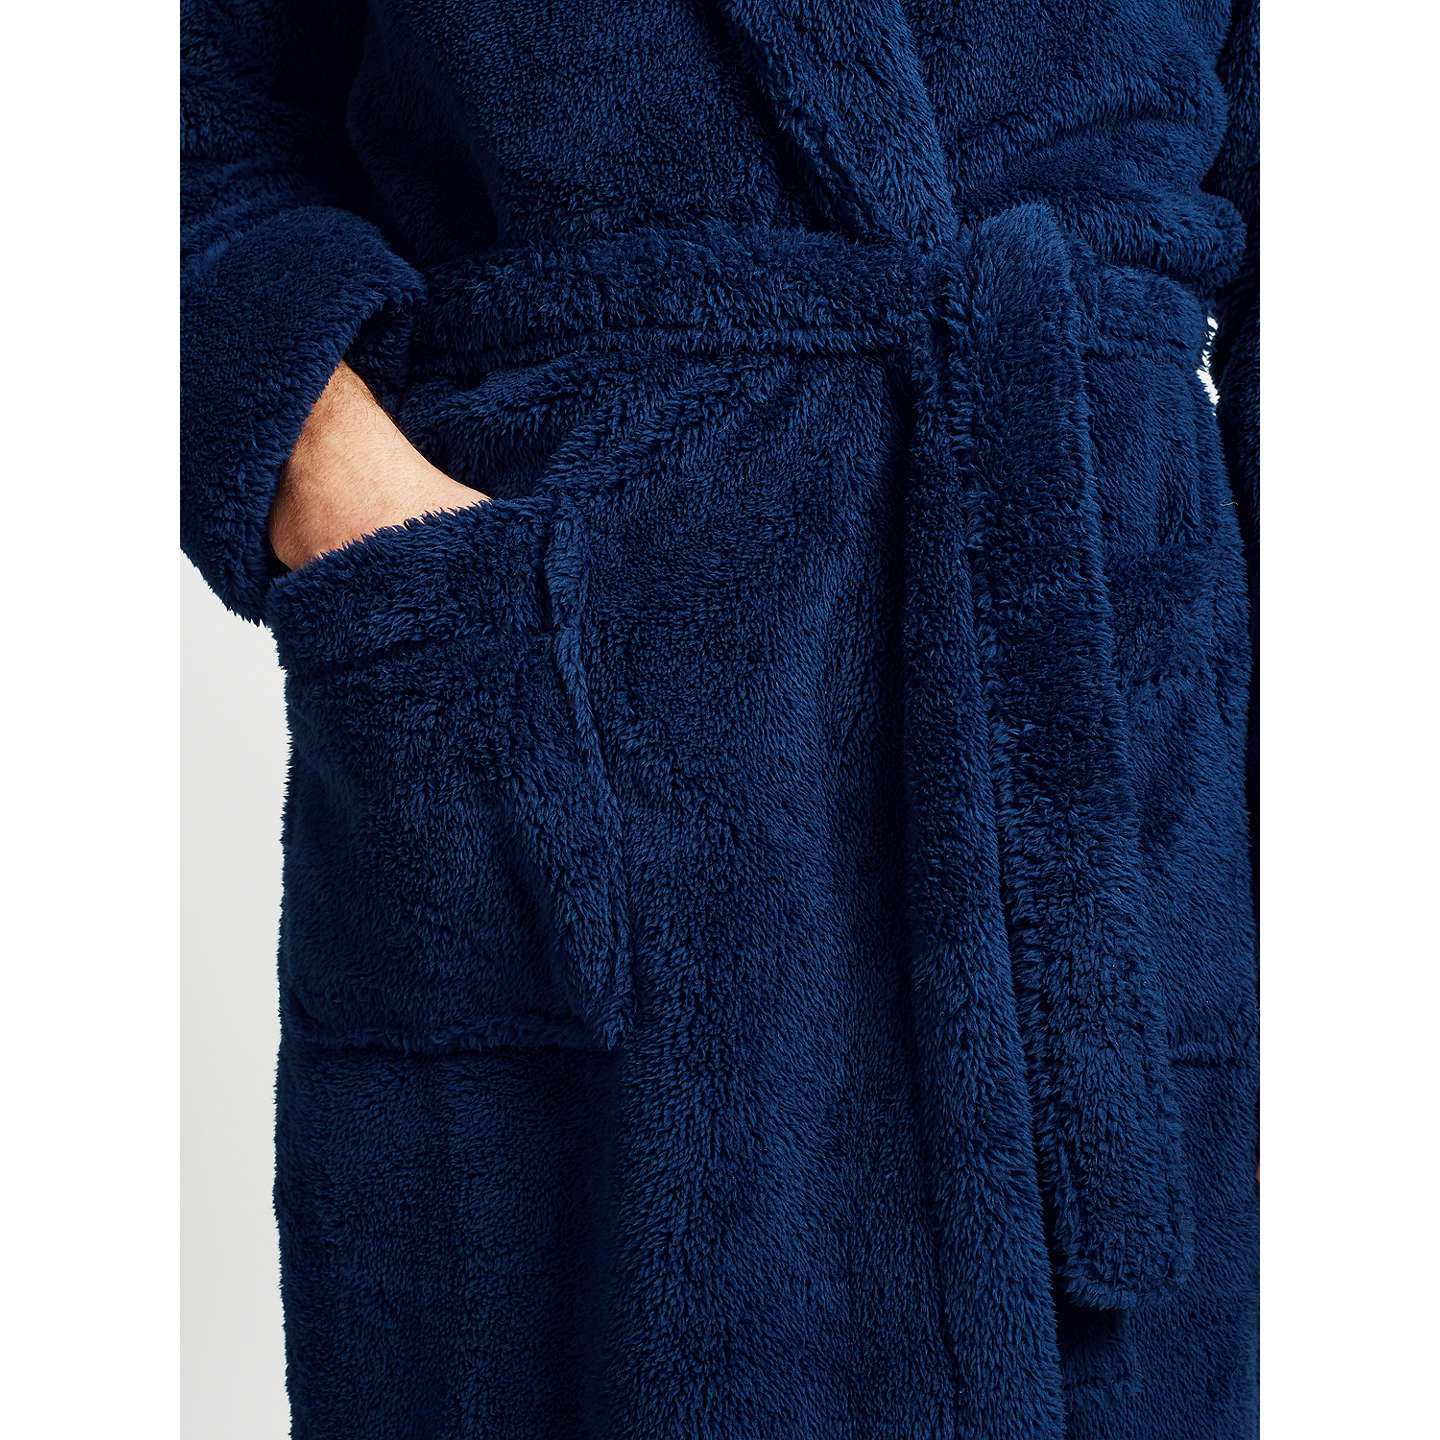 BuyJohn Lewis High Pile Fleece Robe, Navy, S Online at johnlewis.com